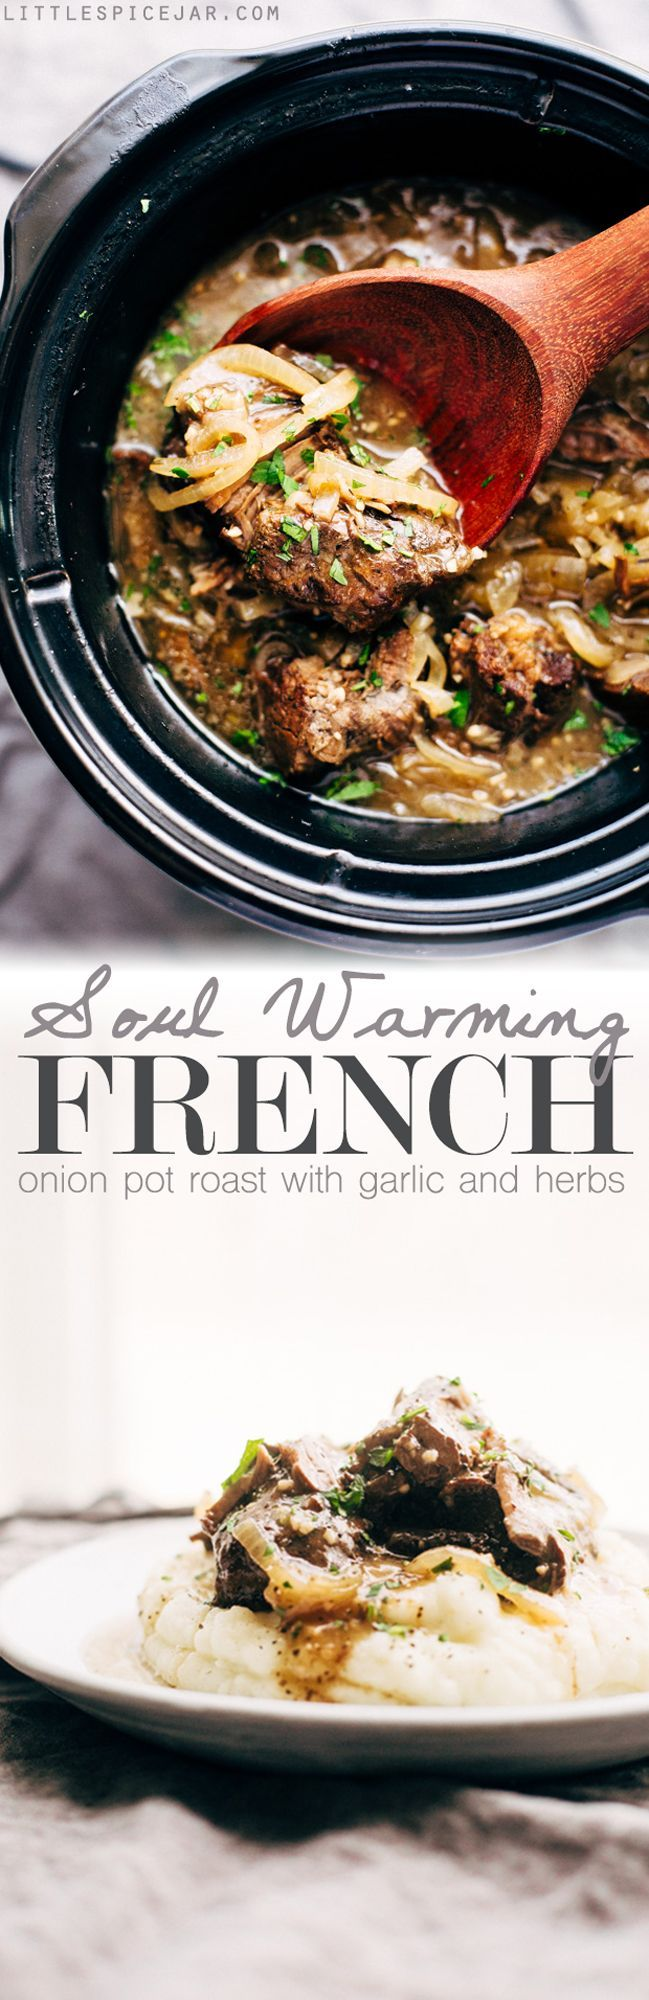 Soul Warming French Onion Pot Roast #Recipe - A simple pot roast that combines french onion soup with pot roast! Make it in the slow cooker on in the oven! #MainCourse